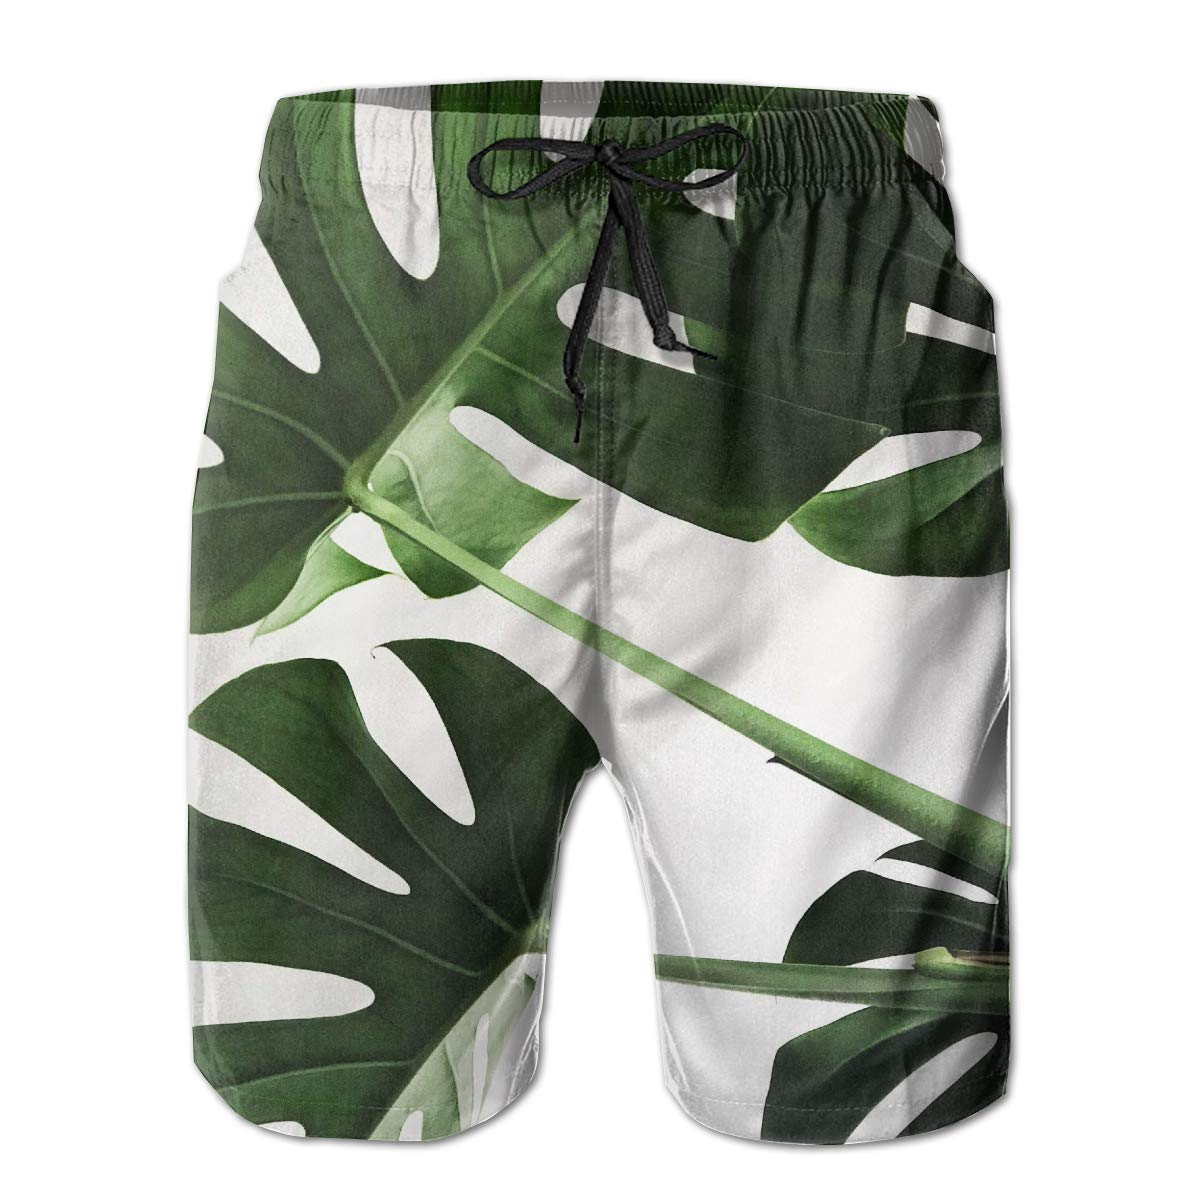 MikonsuPlant Leaf Green Mens Swim Trunks Quick Dry Bathing Suits Beach Holiday Party Board Shorts